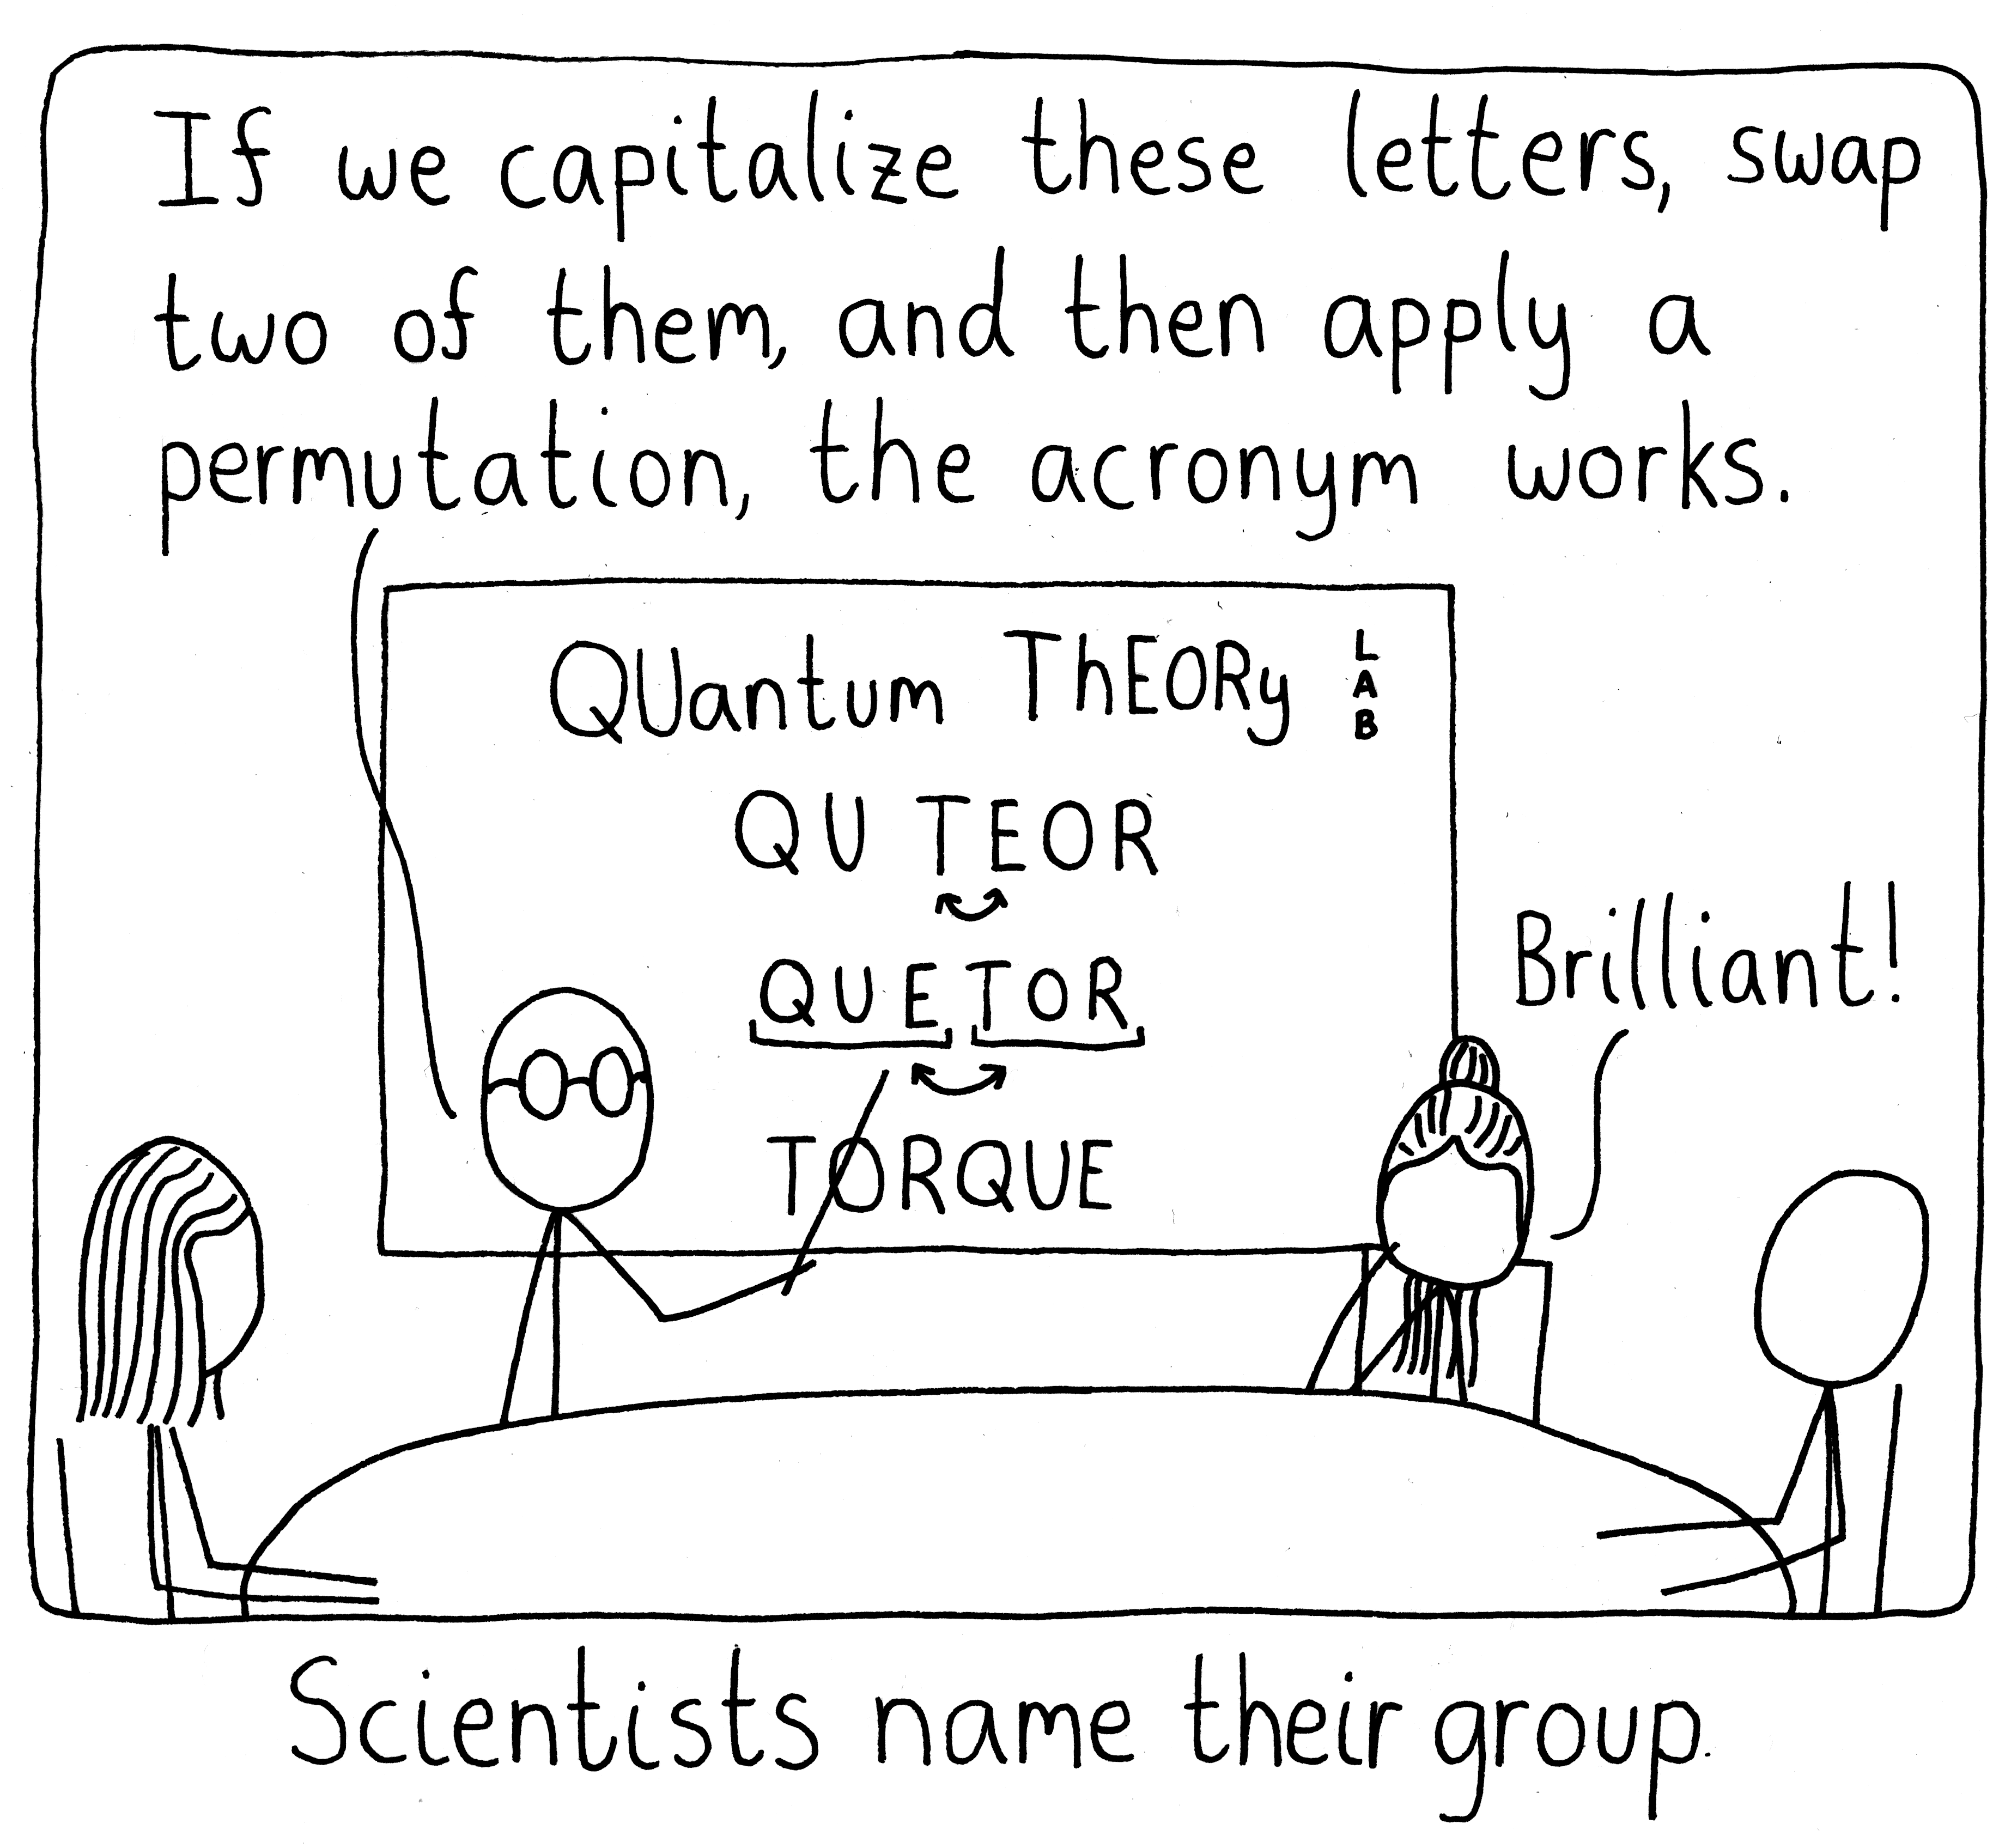 Scientists trying to come up with a good name.